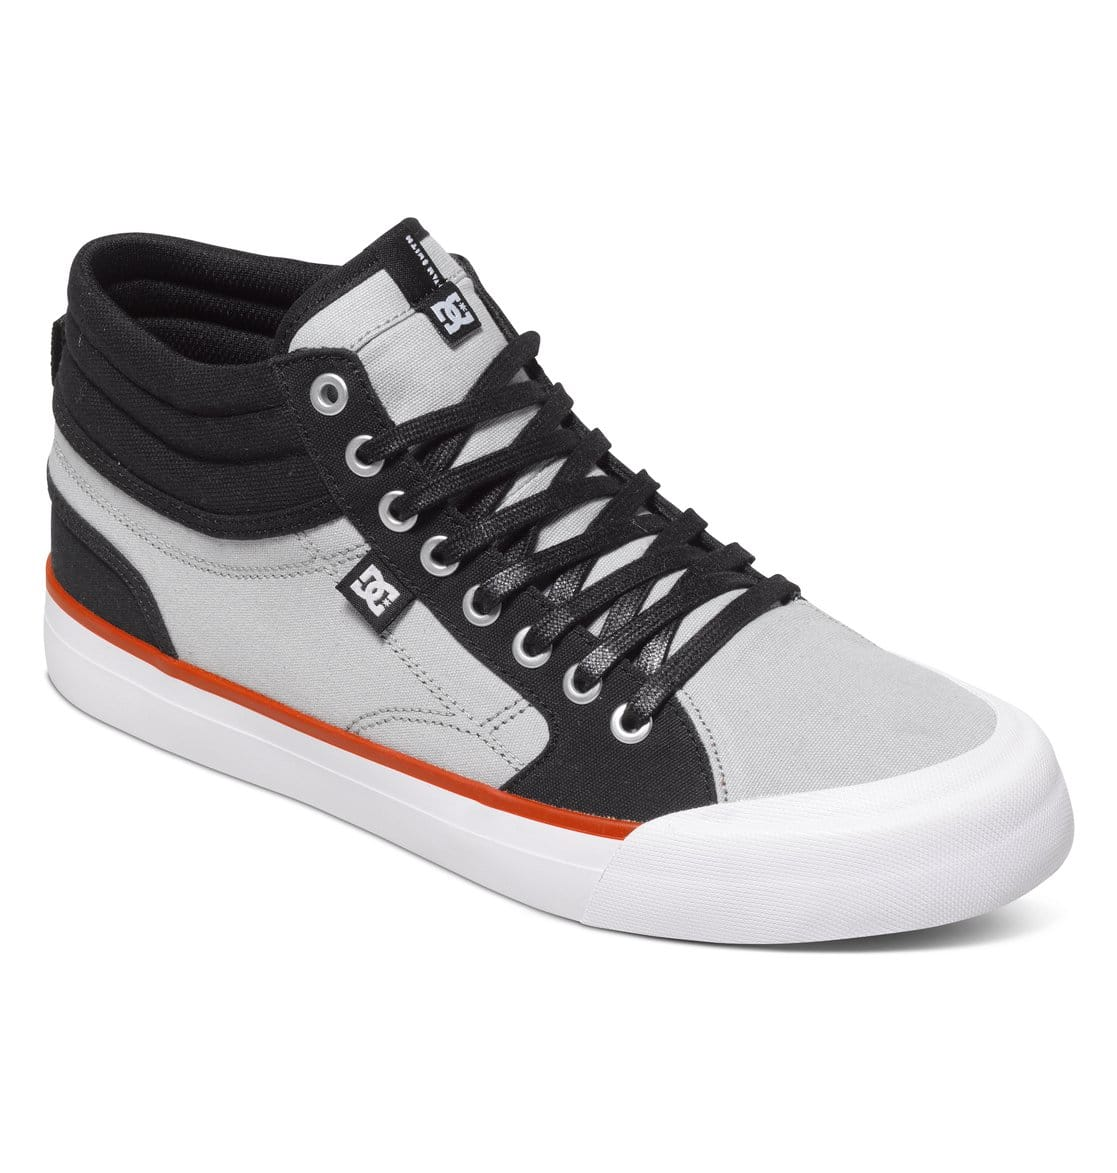 On Sale DC Evan Smith High Skate Shoes up to 40% off